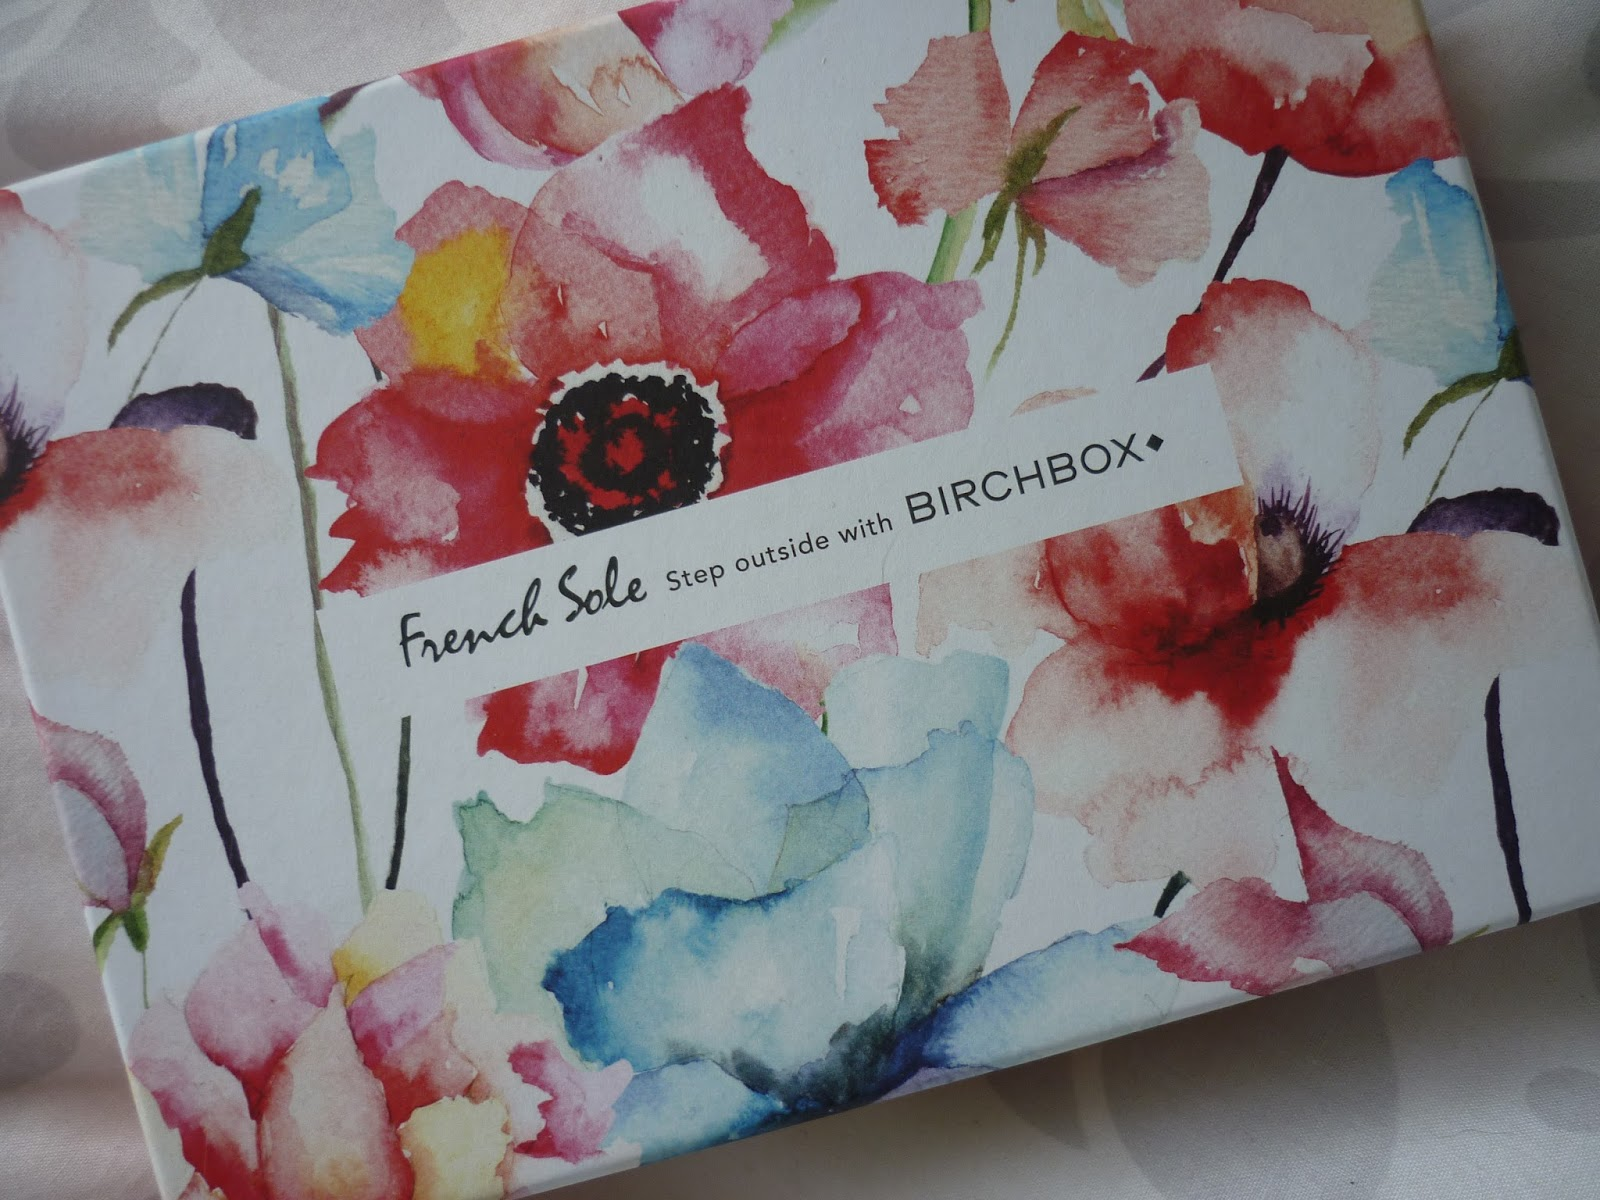 French Sole Birchbox Floral